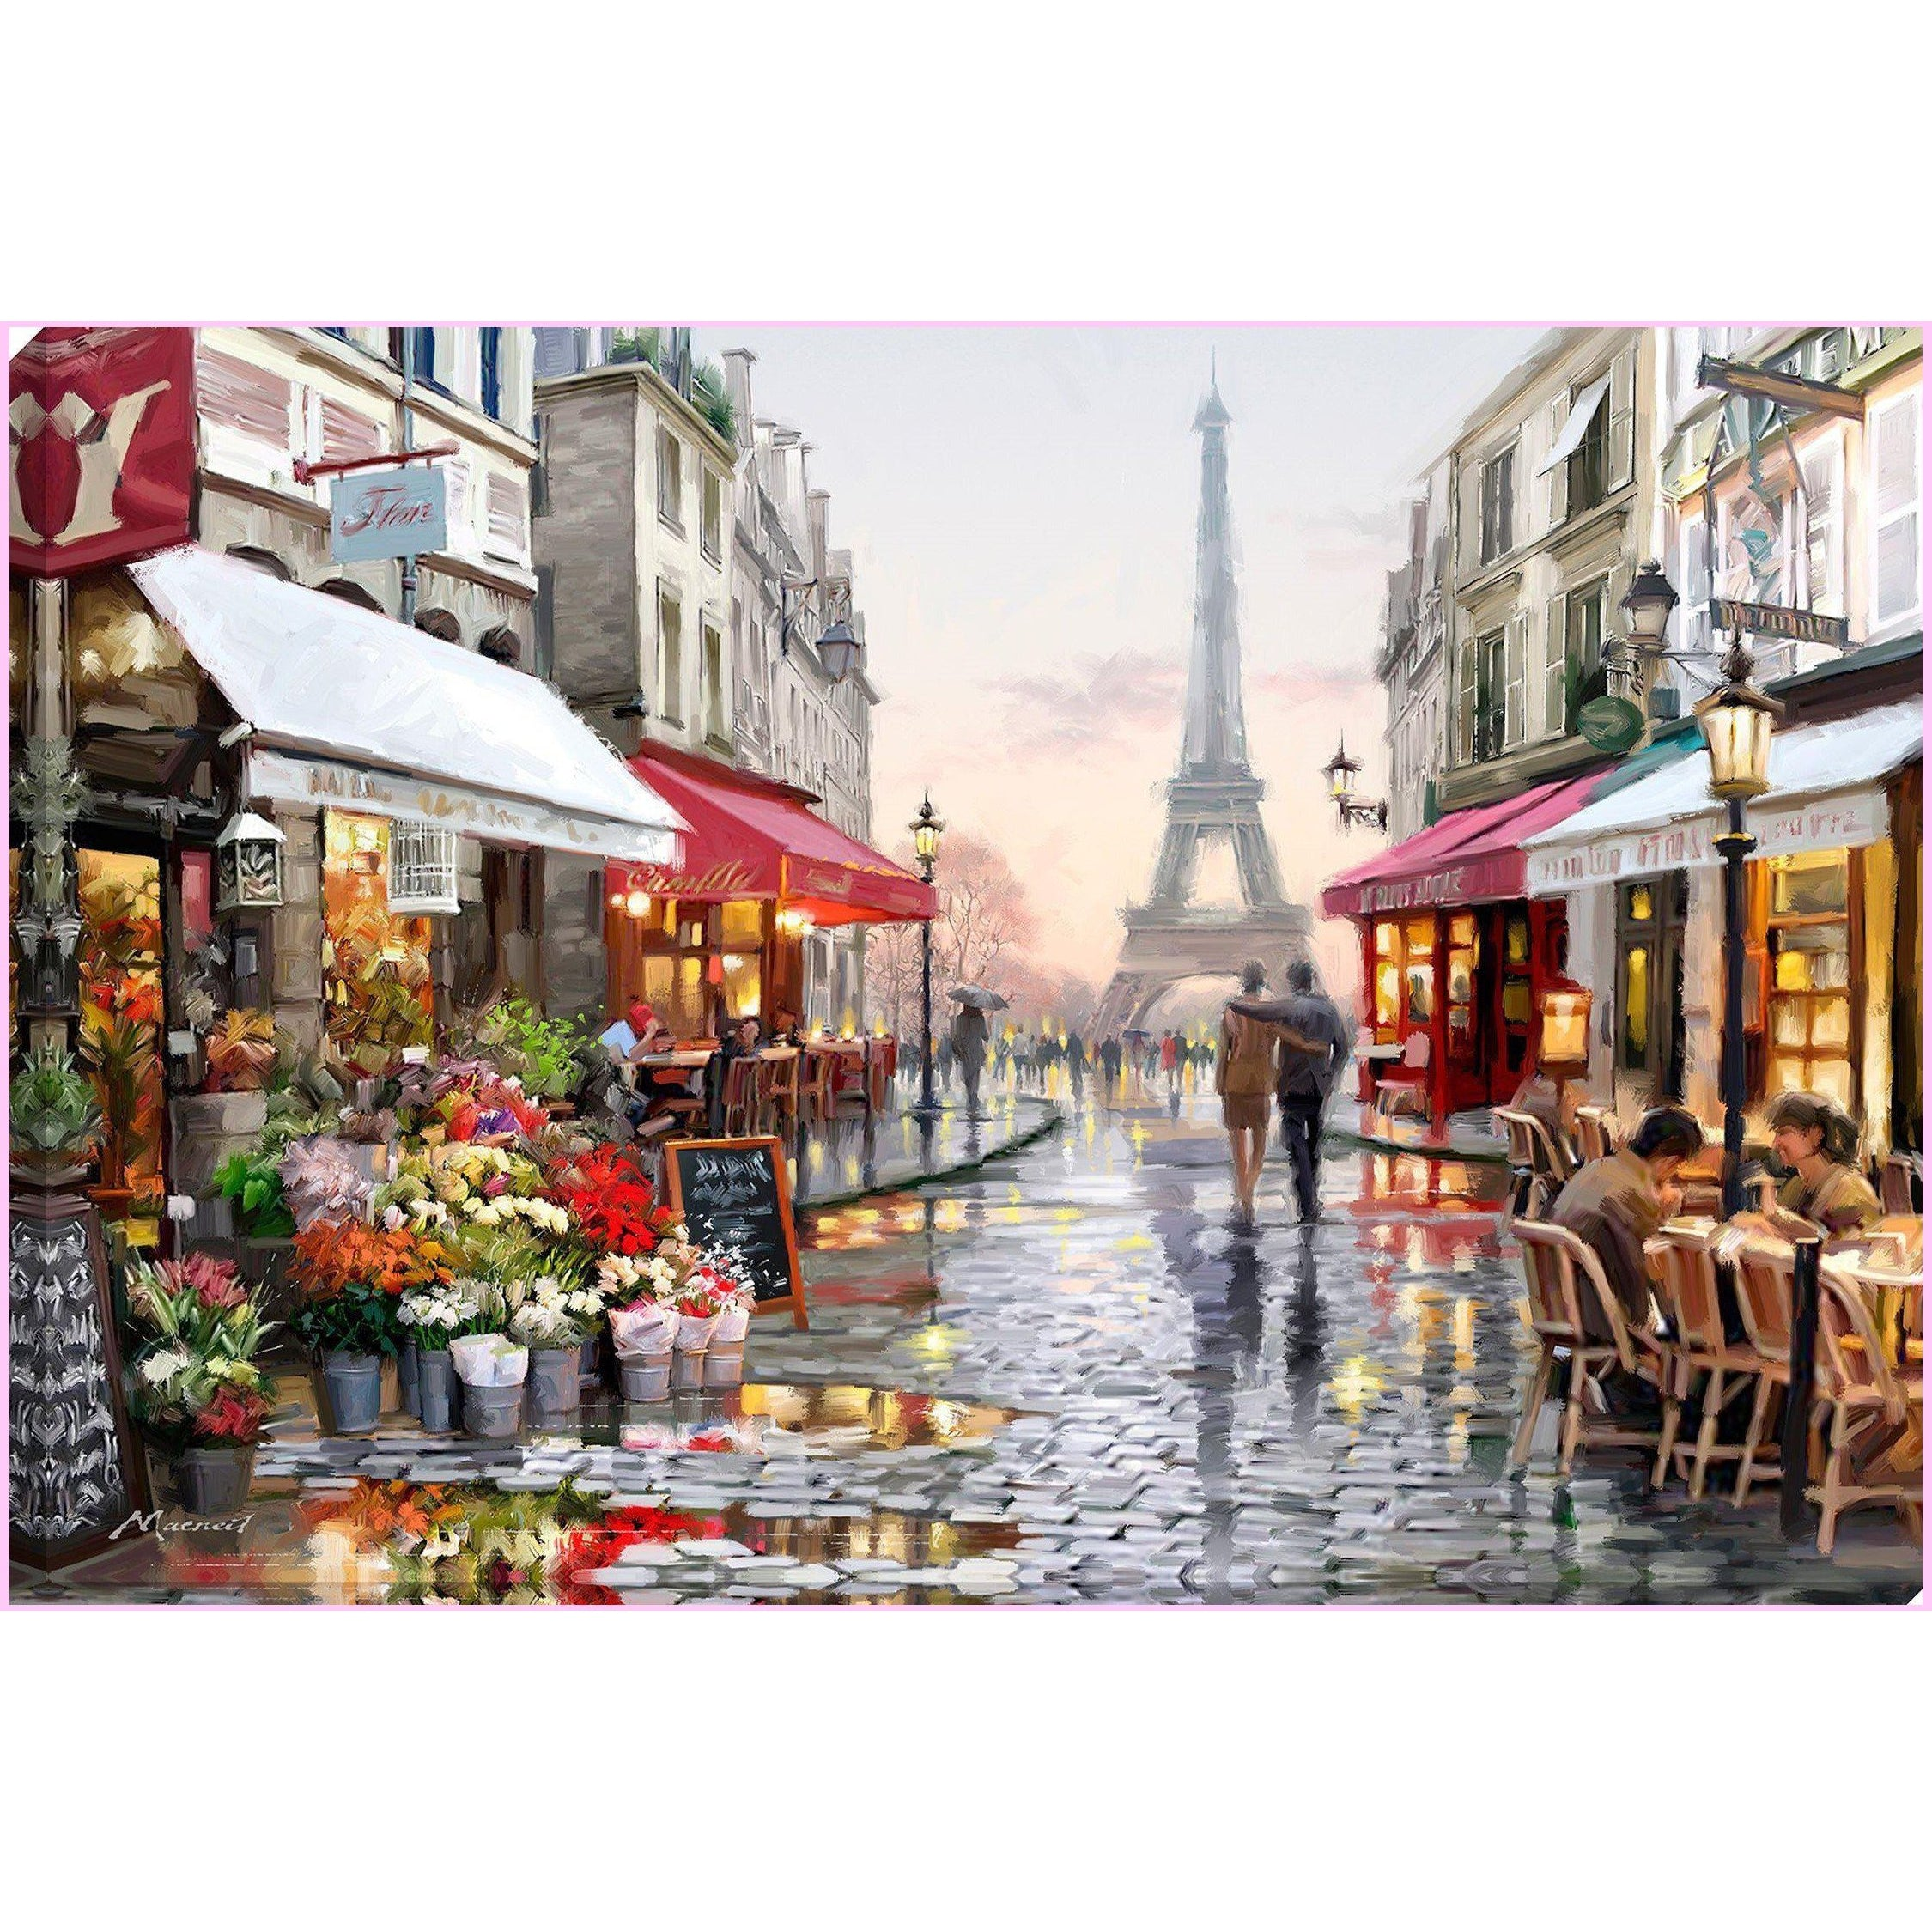 rainy day in paris full drill diamond painting by create love share